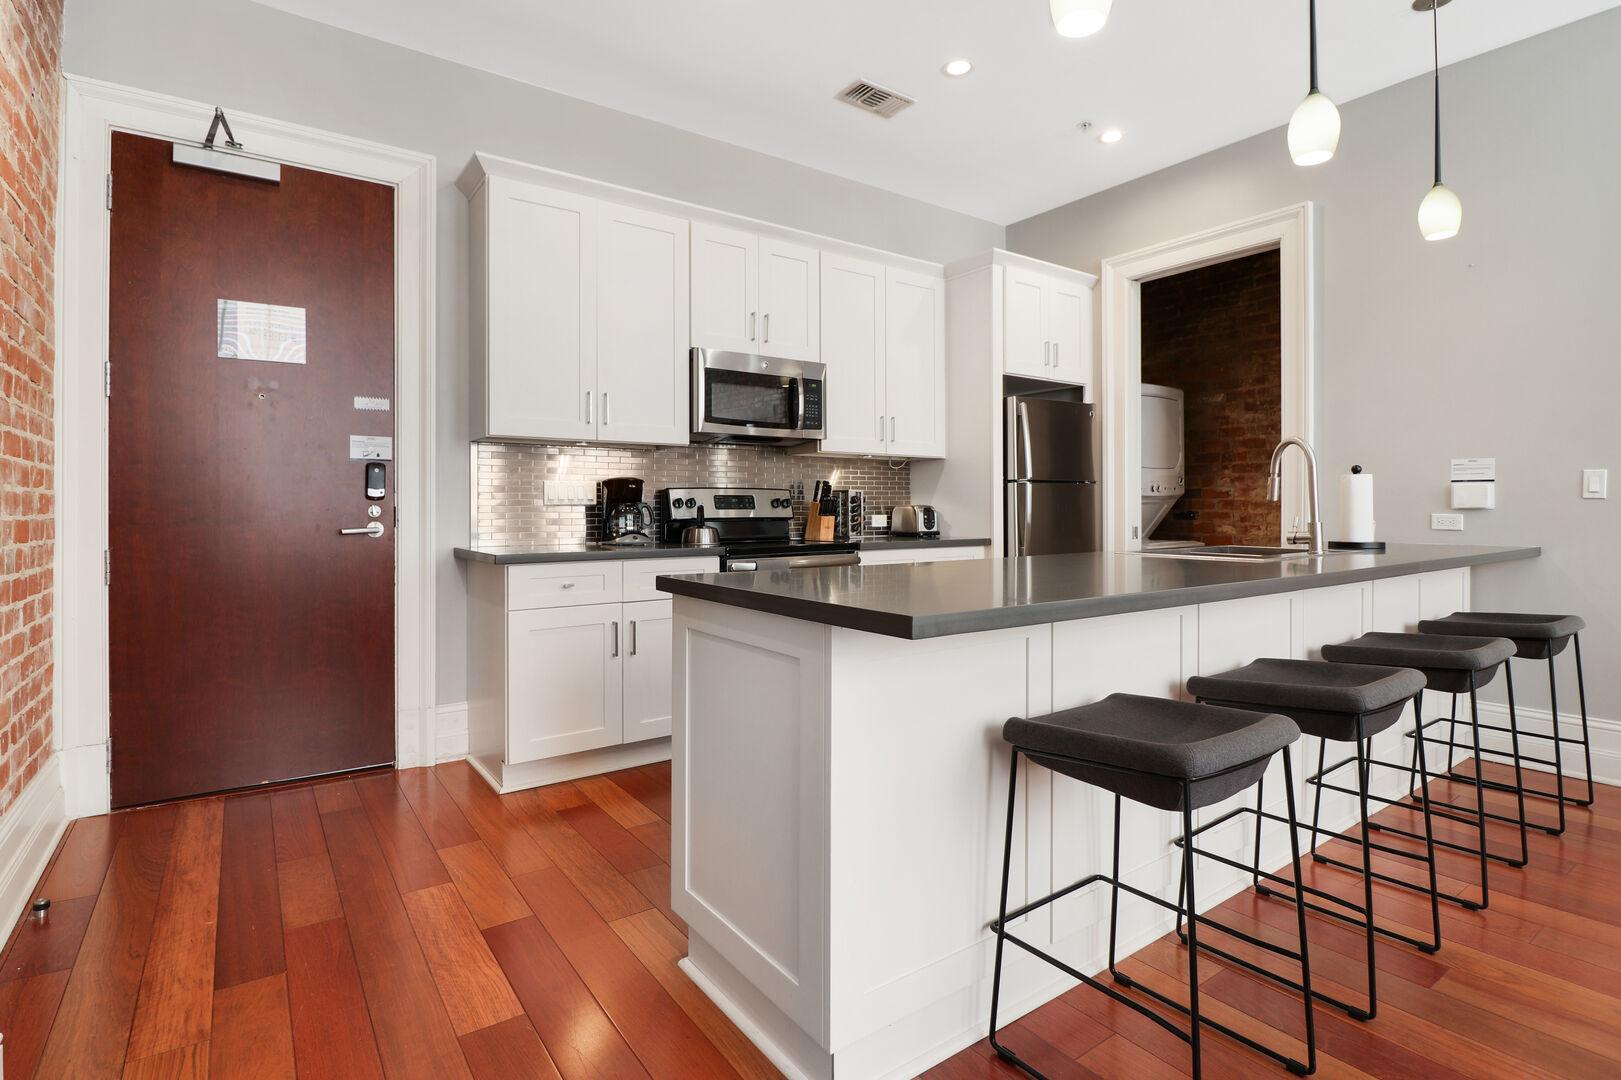 Property Image 2 - Factors Row 2 bed | 2 bath #314- 5 minutes to Bourbon St.